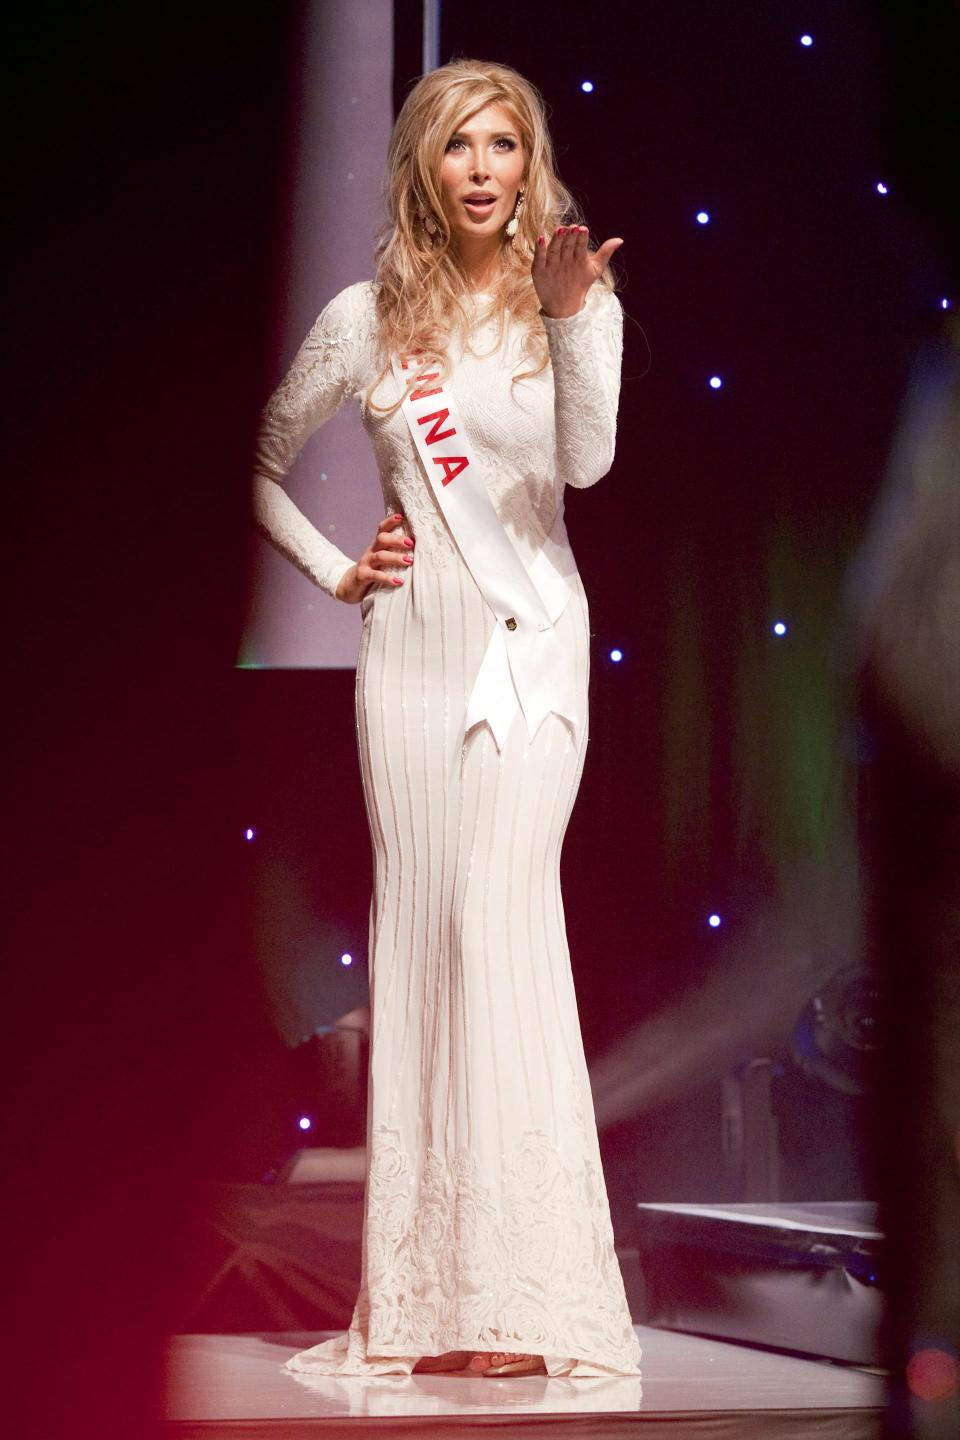 Canadian Beauty Magazines: Transgender Miss Universe Canada Contestant Loses